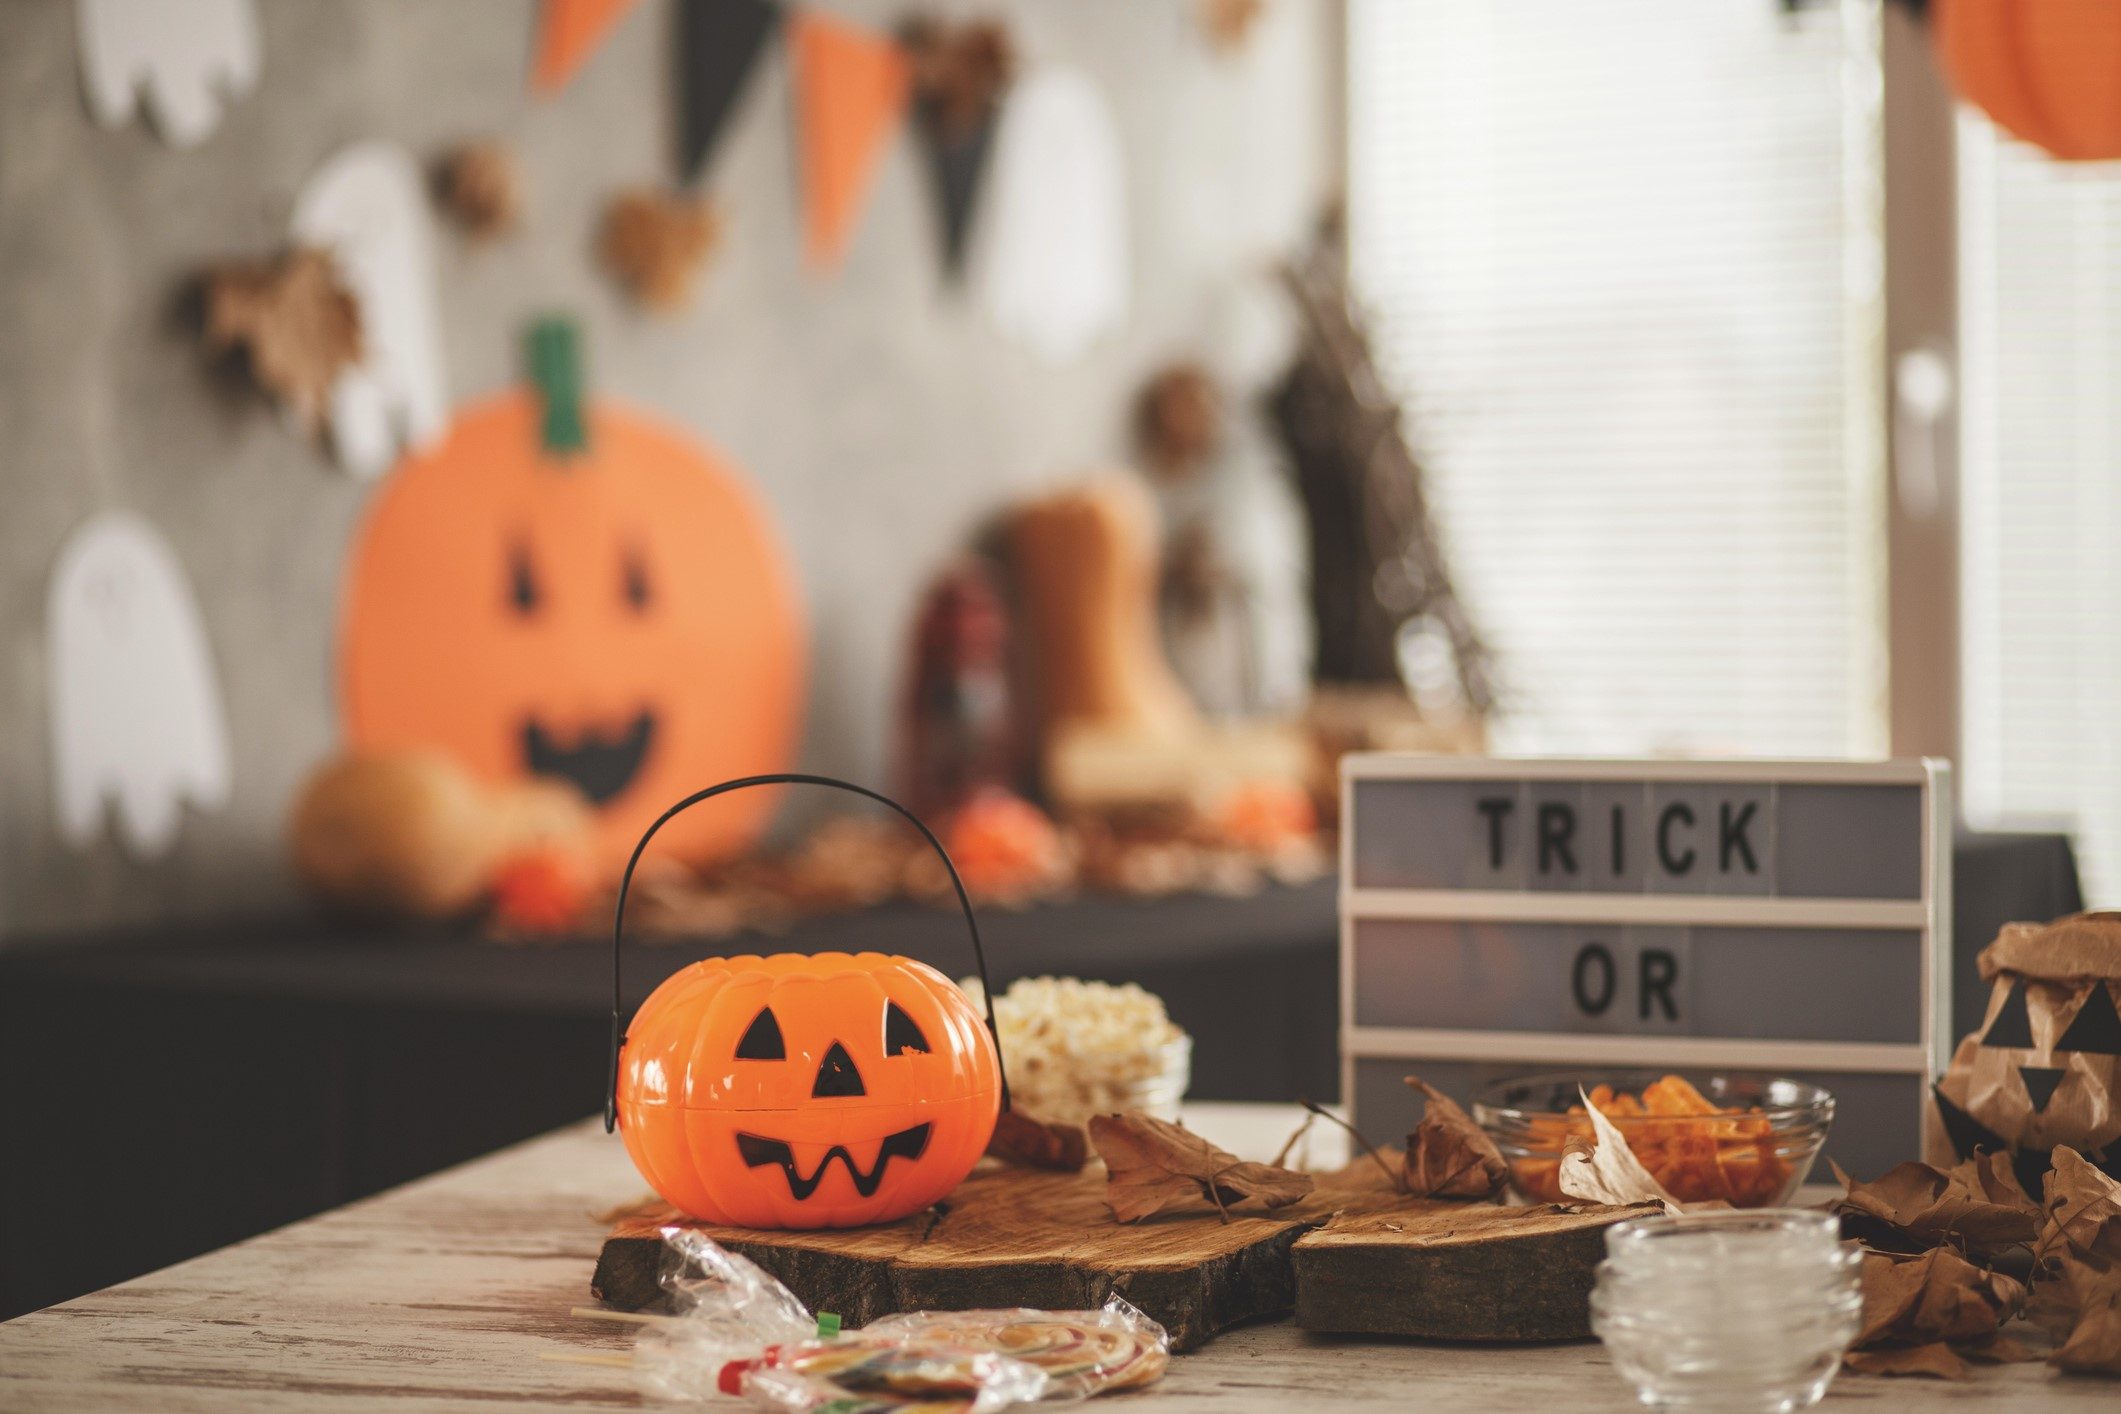 best campgrounds for celebrating halloween - rv lifestyle news, tips